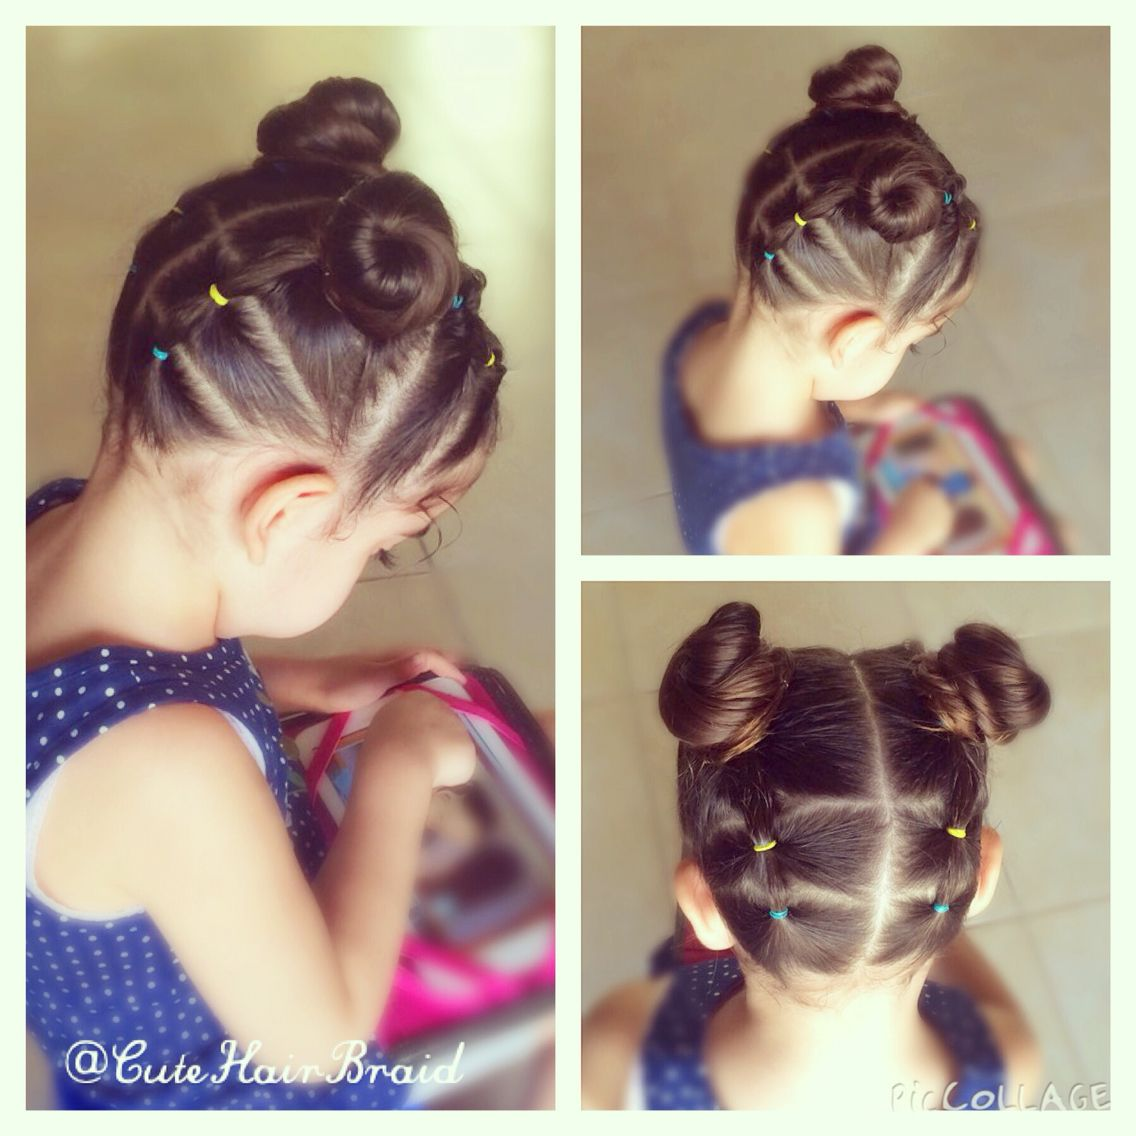 Bun hairstyle for little girls peinados para ni as - Peinados para ninas ...